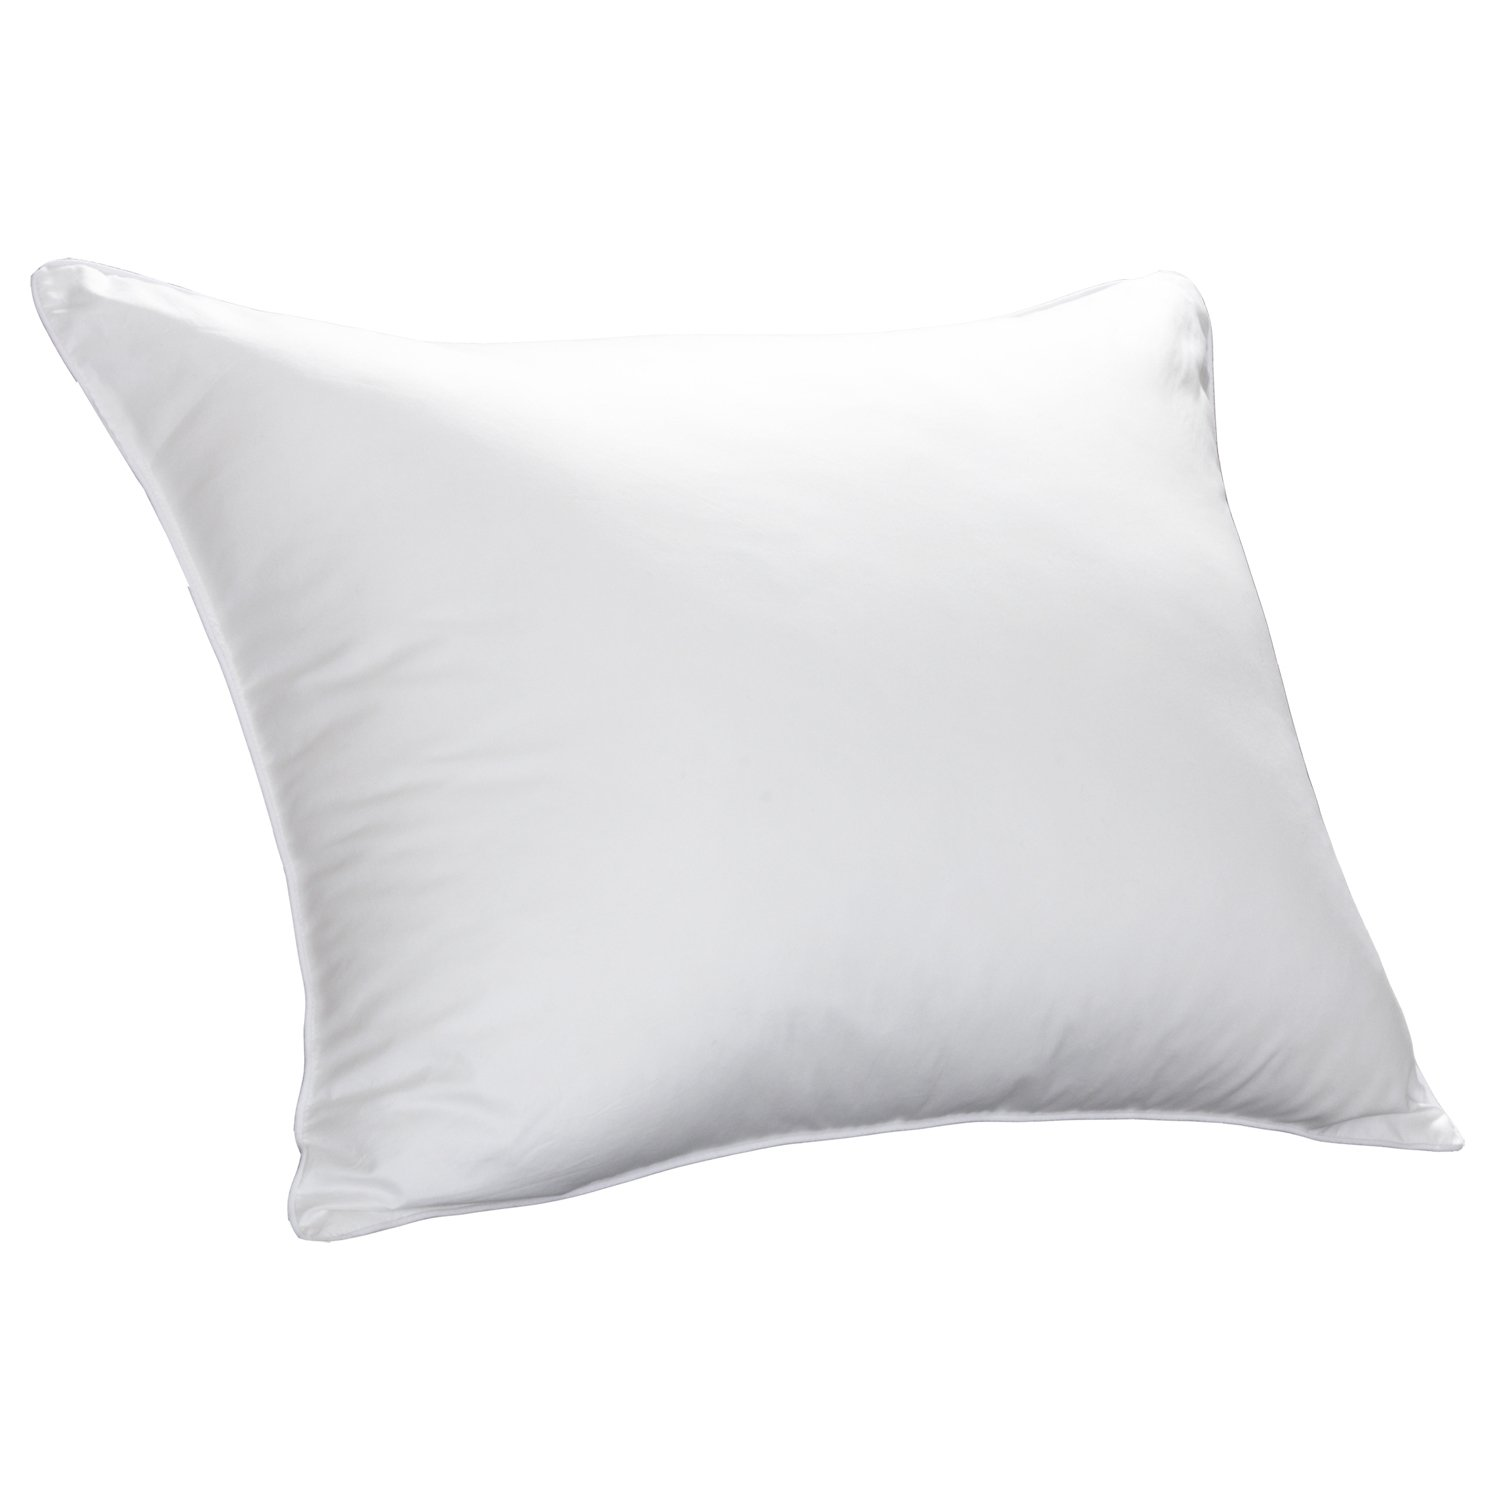 throw black com down shop stripe qlqbovl pillows and amazon patio outdoor throwws white decorative pillow